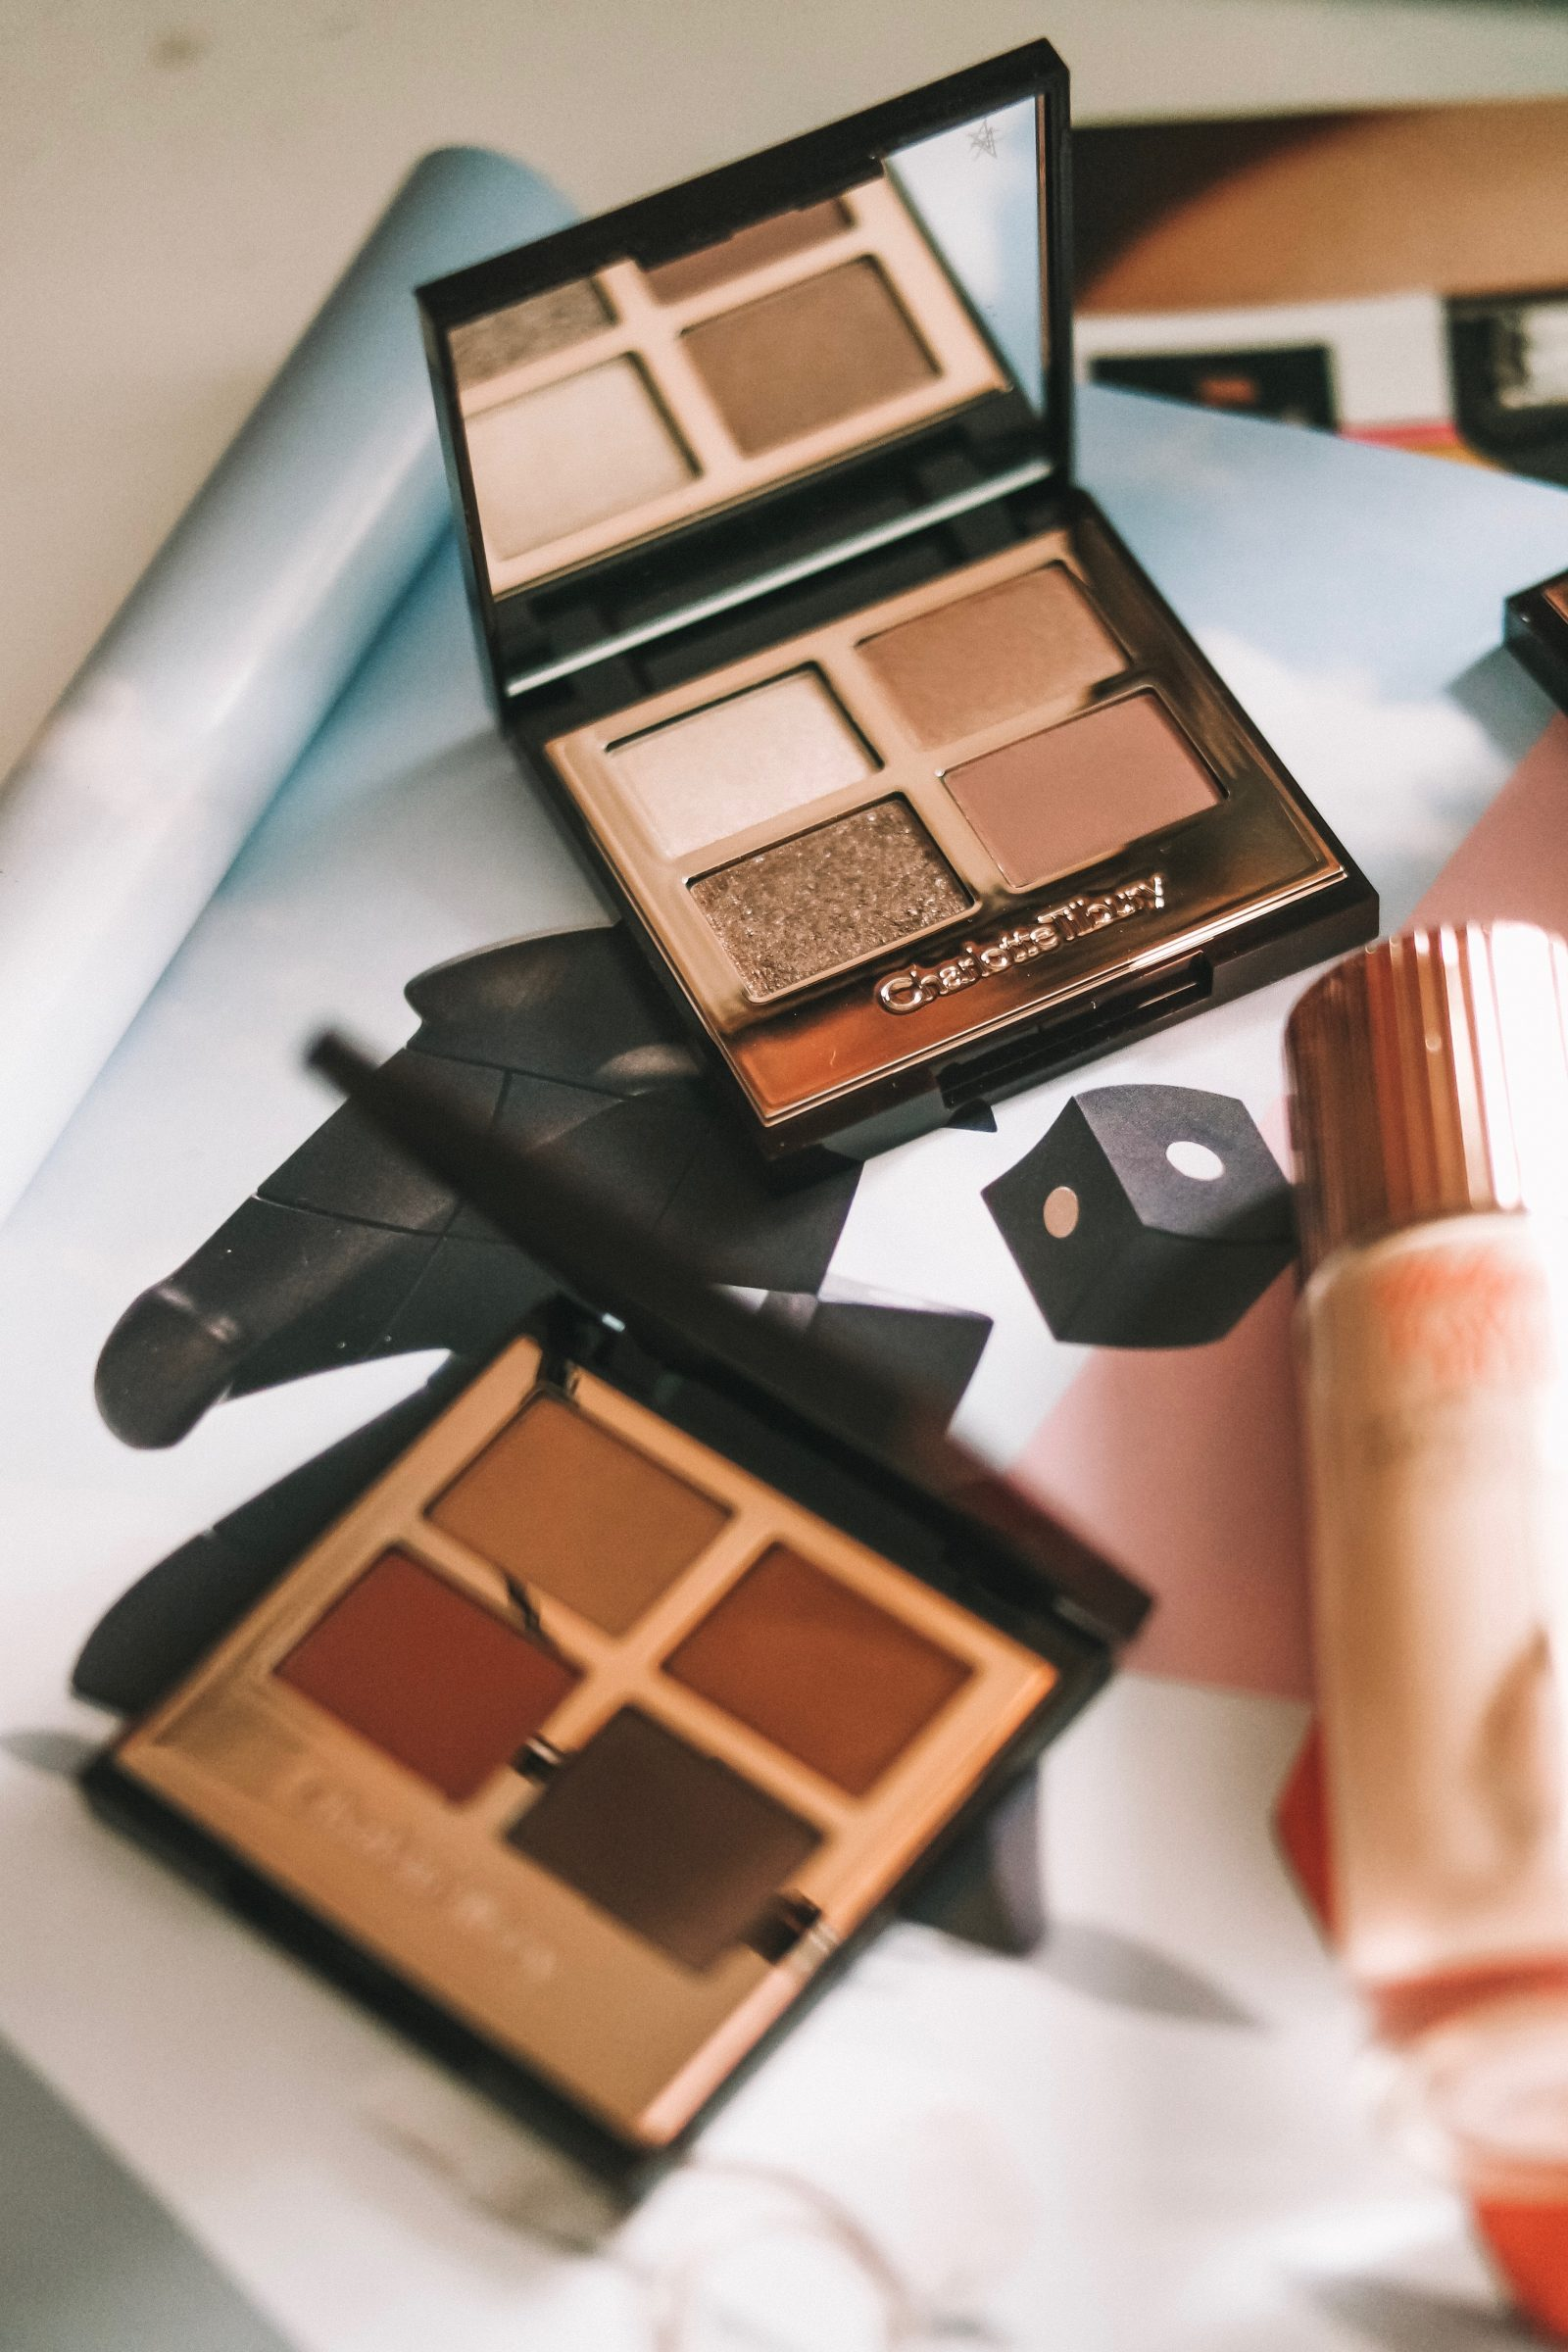 Charlotte Tilbury Filter Collection Flatlay - Bigger Brighter Eye Palette